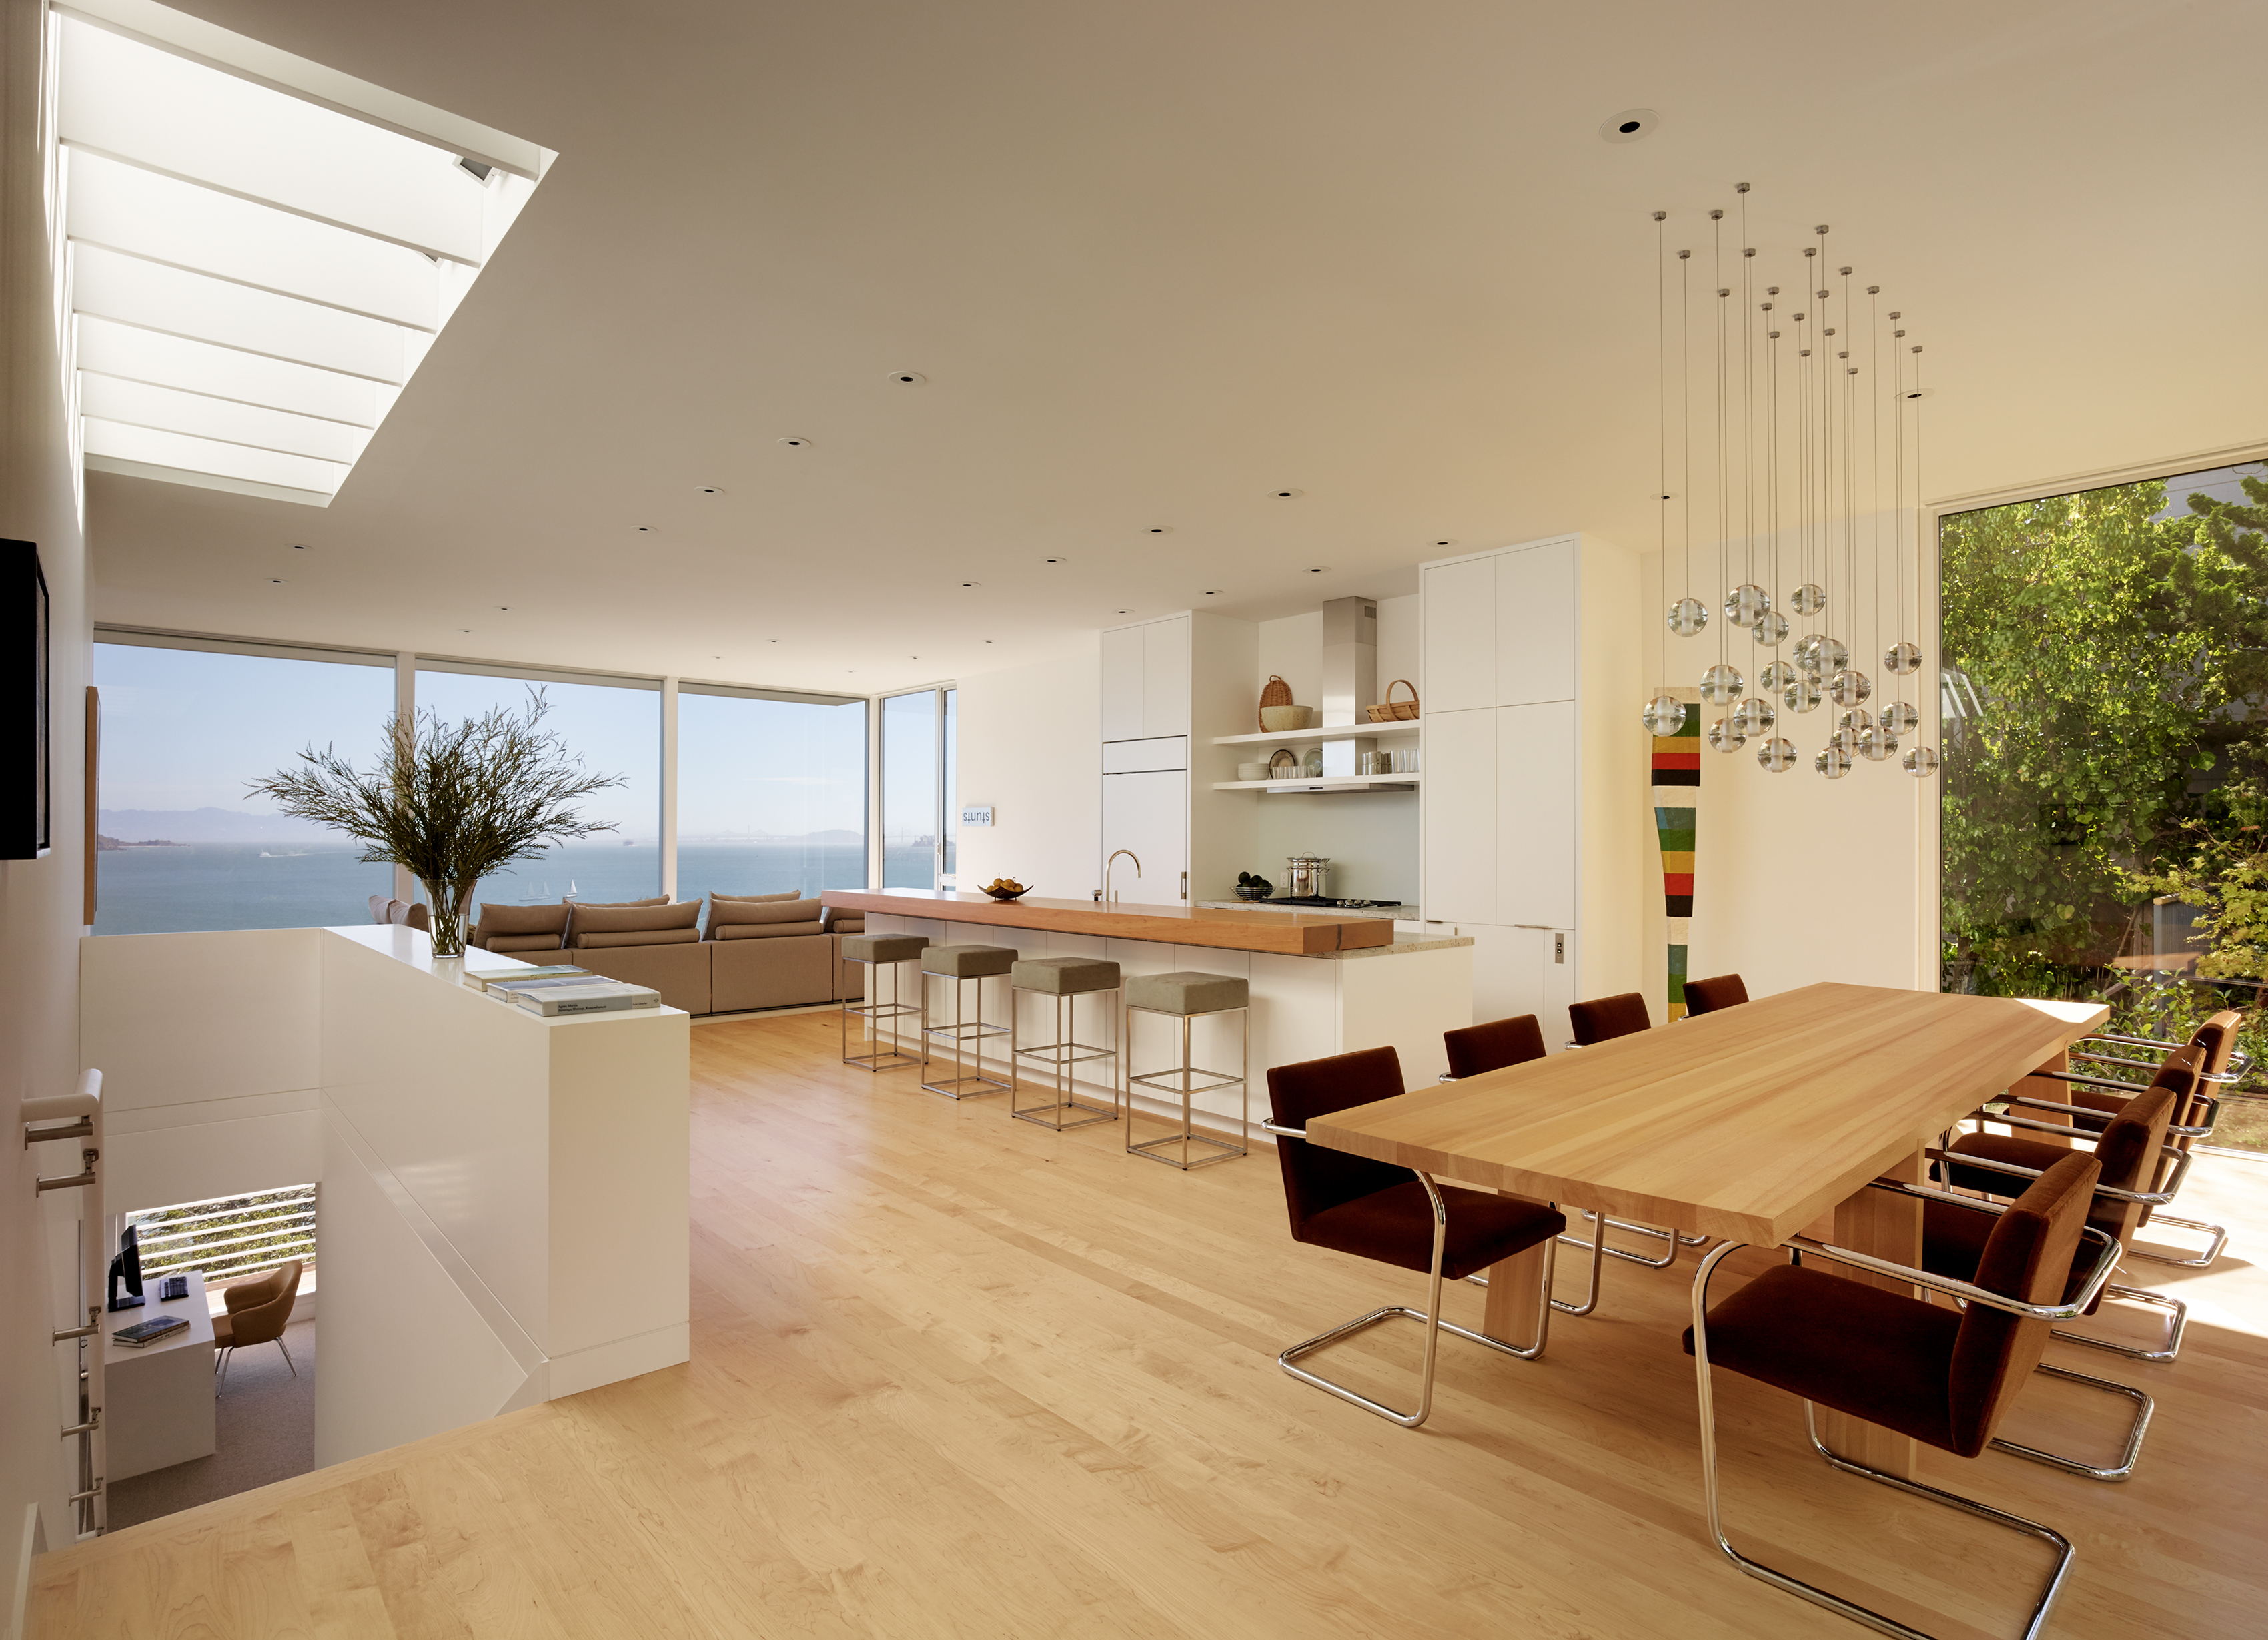 The staircase opens up into the dining room, kitchen, and living room. The open concept really allows visitors to move from the lush backyard to viewing the bay. The light natural wood floors are mirrored in the dining room and in the top of the eat-in bar at the kitchen island. Above the dining table is a unique light fixture.